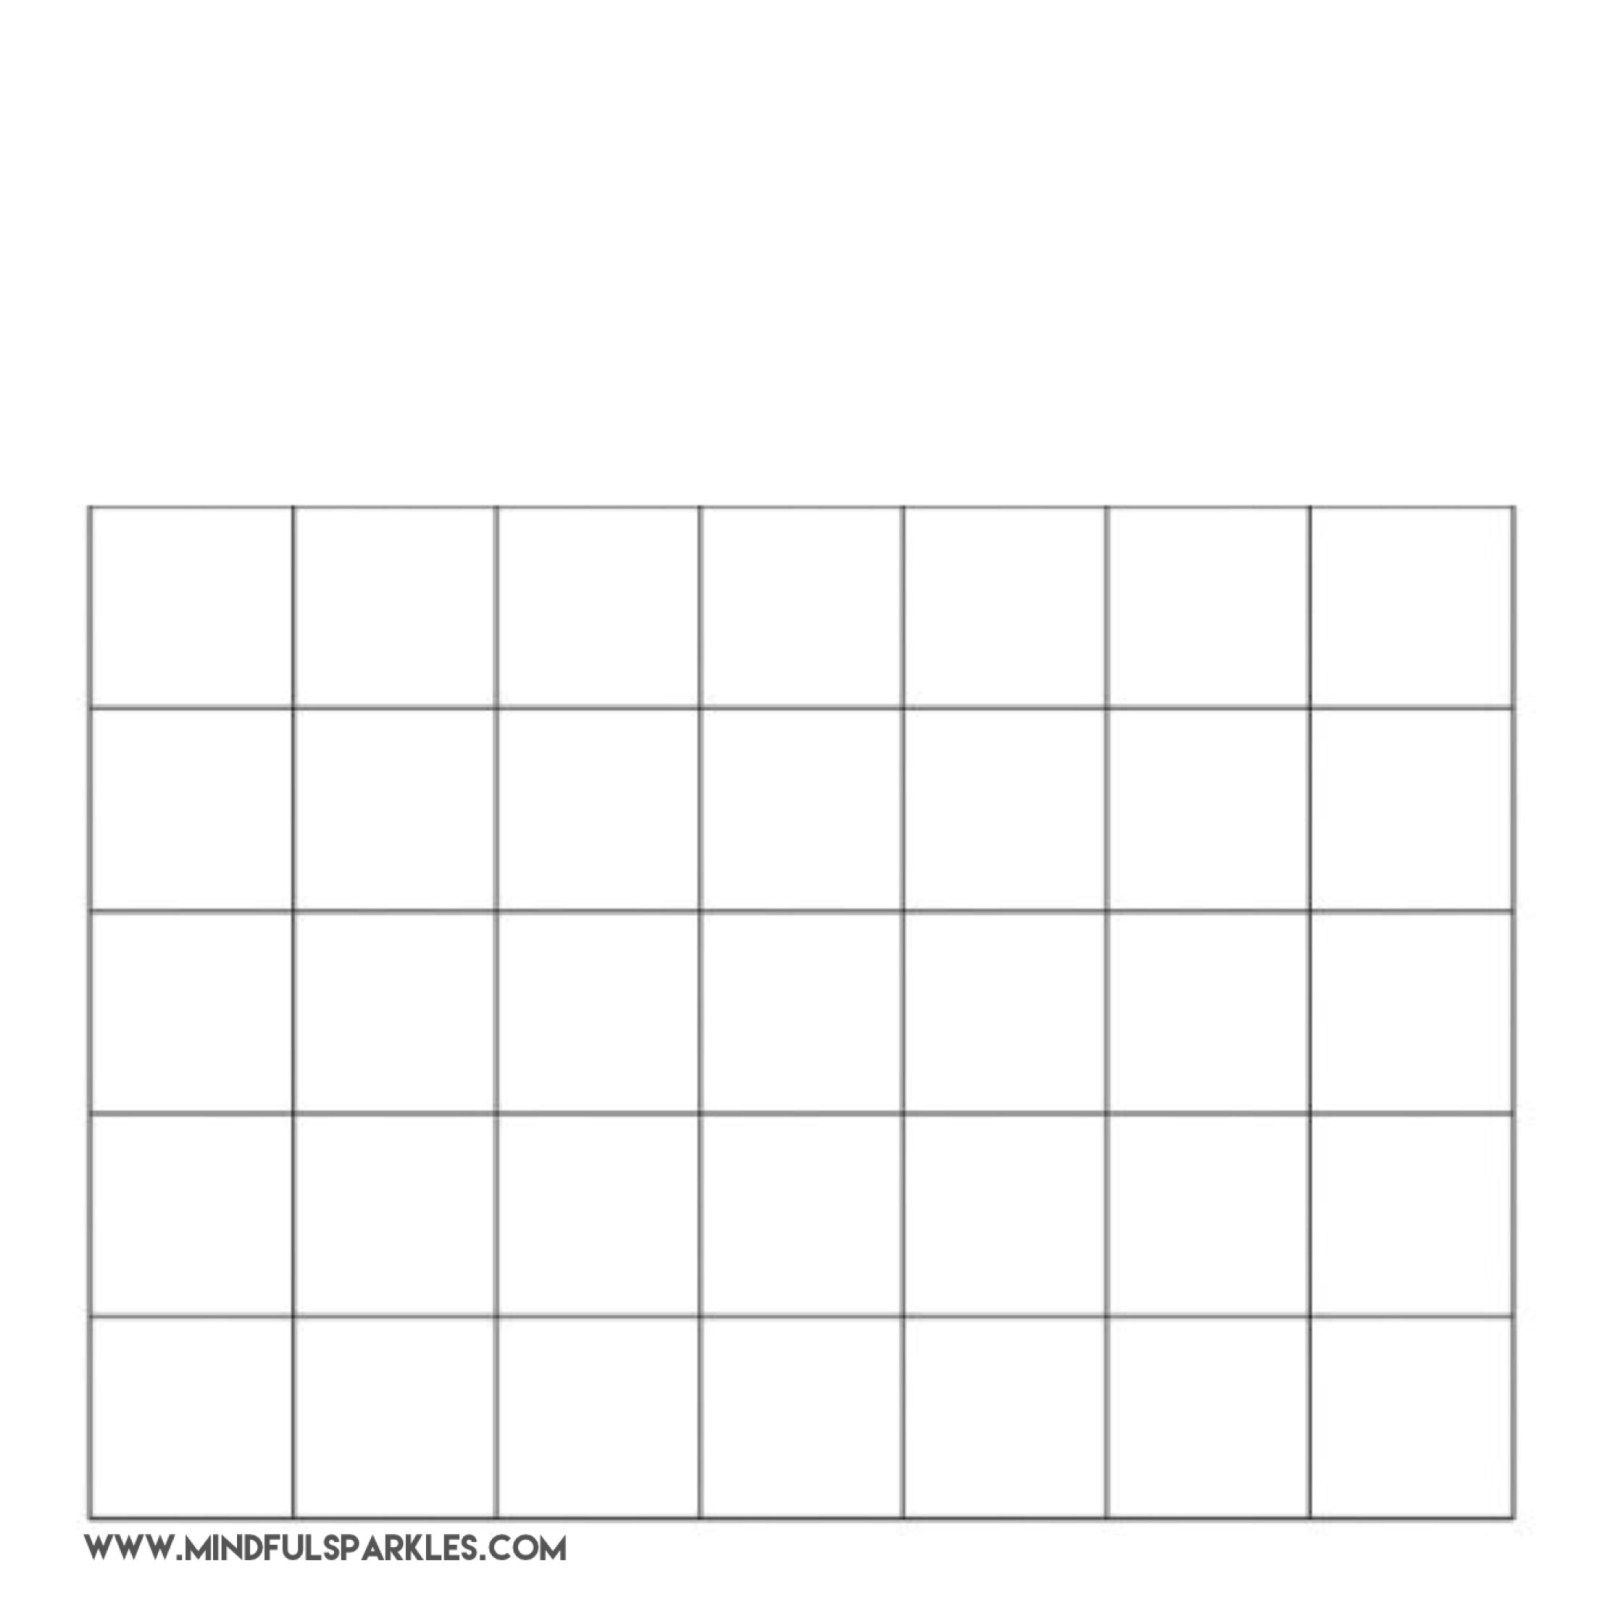 Completely Blank Grid 5x7